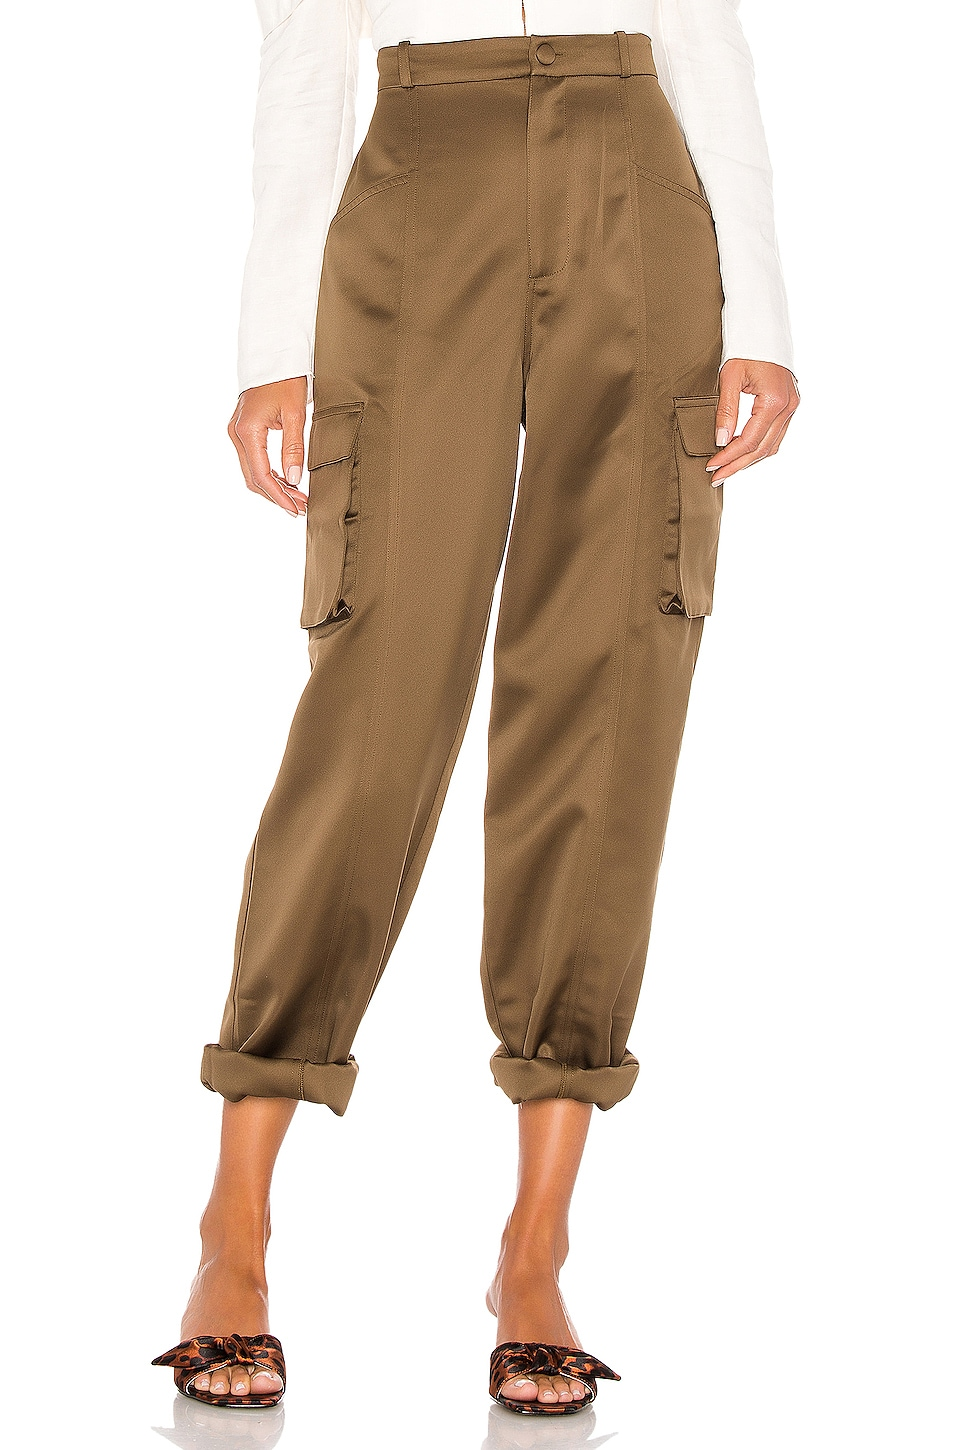 LPA Lisette Pant in Taupe